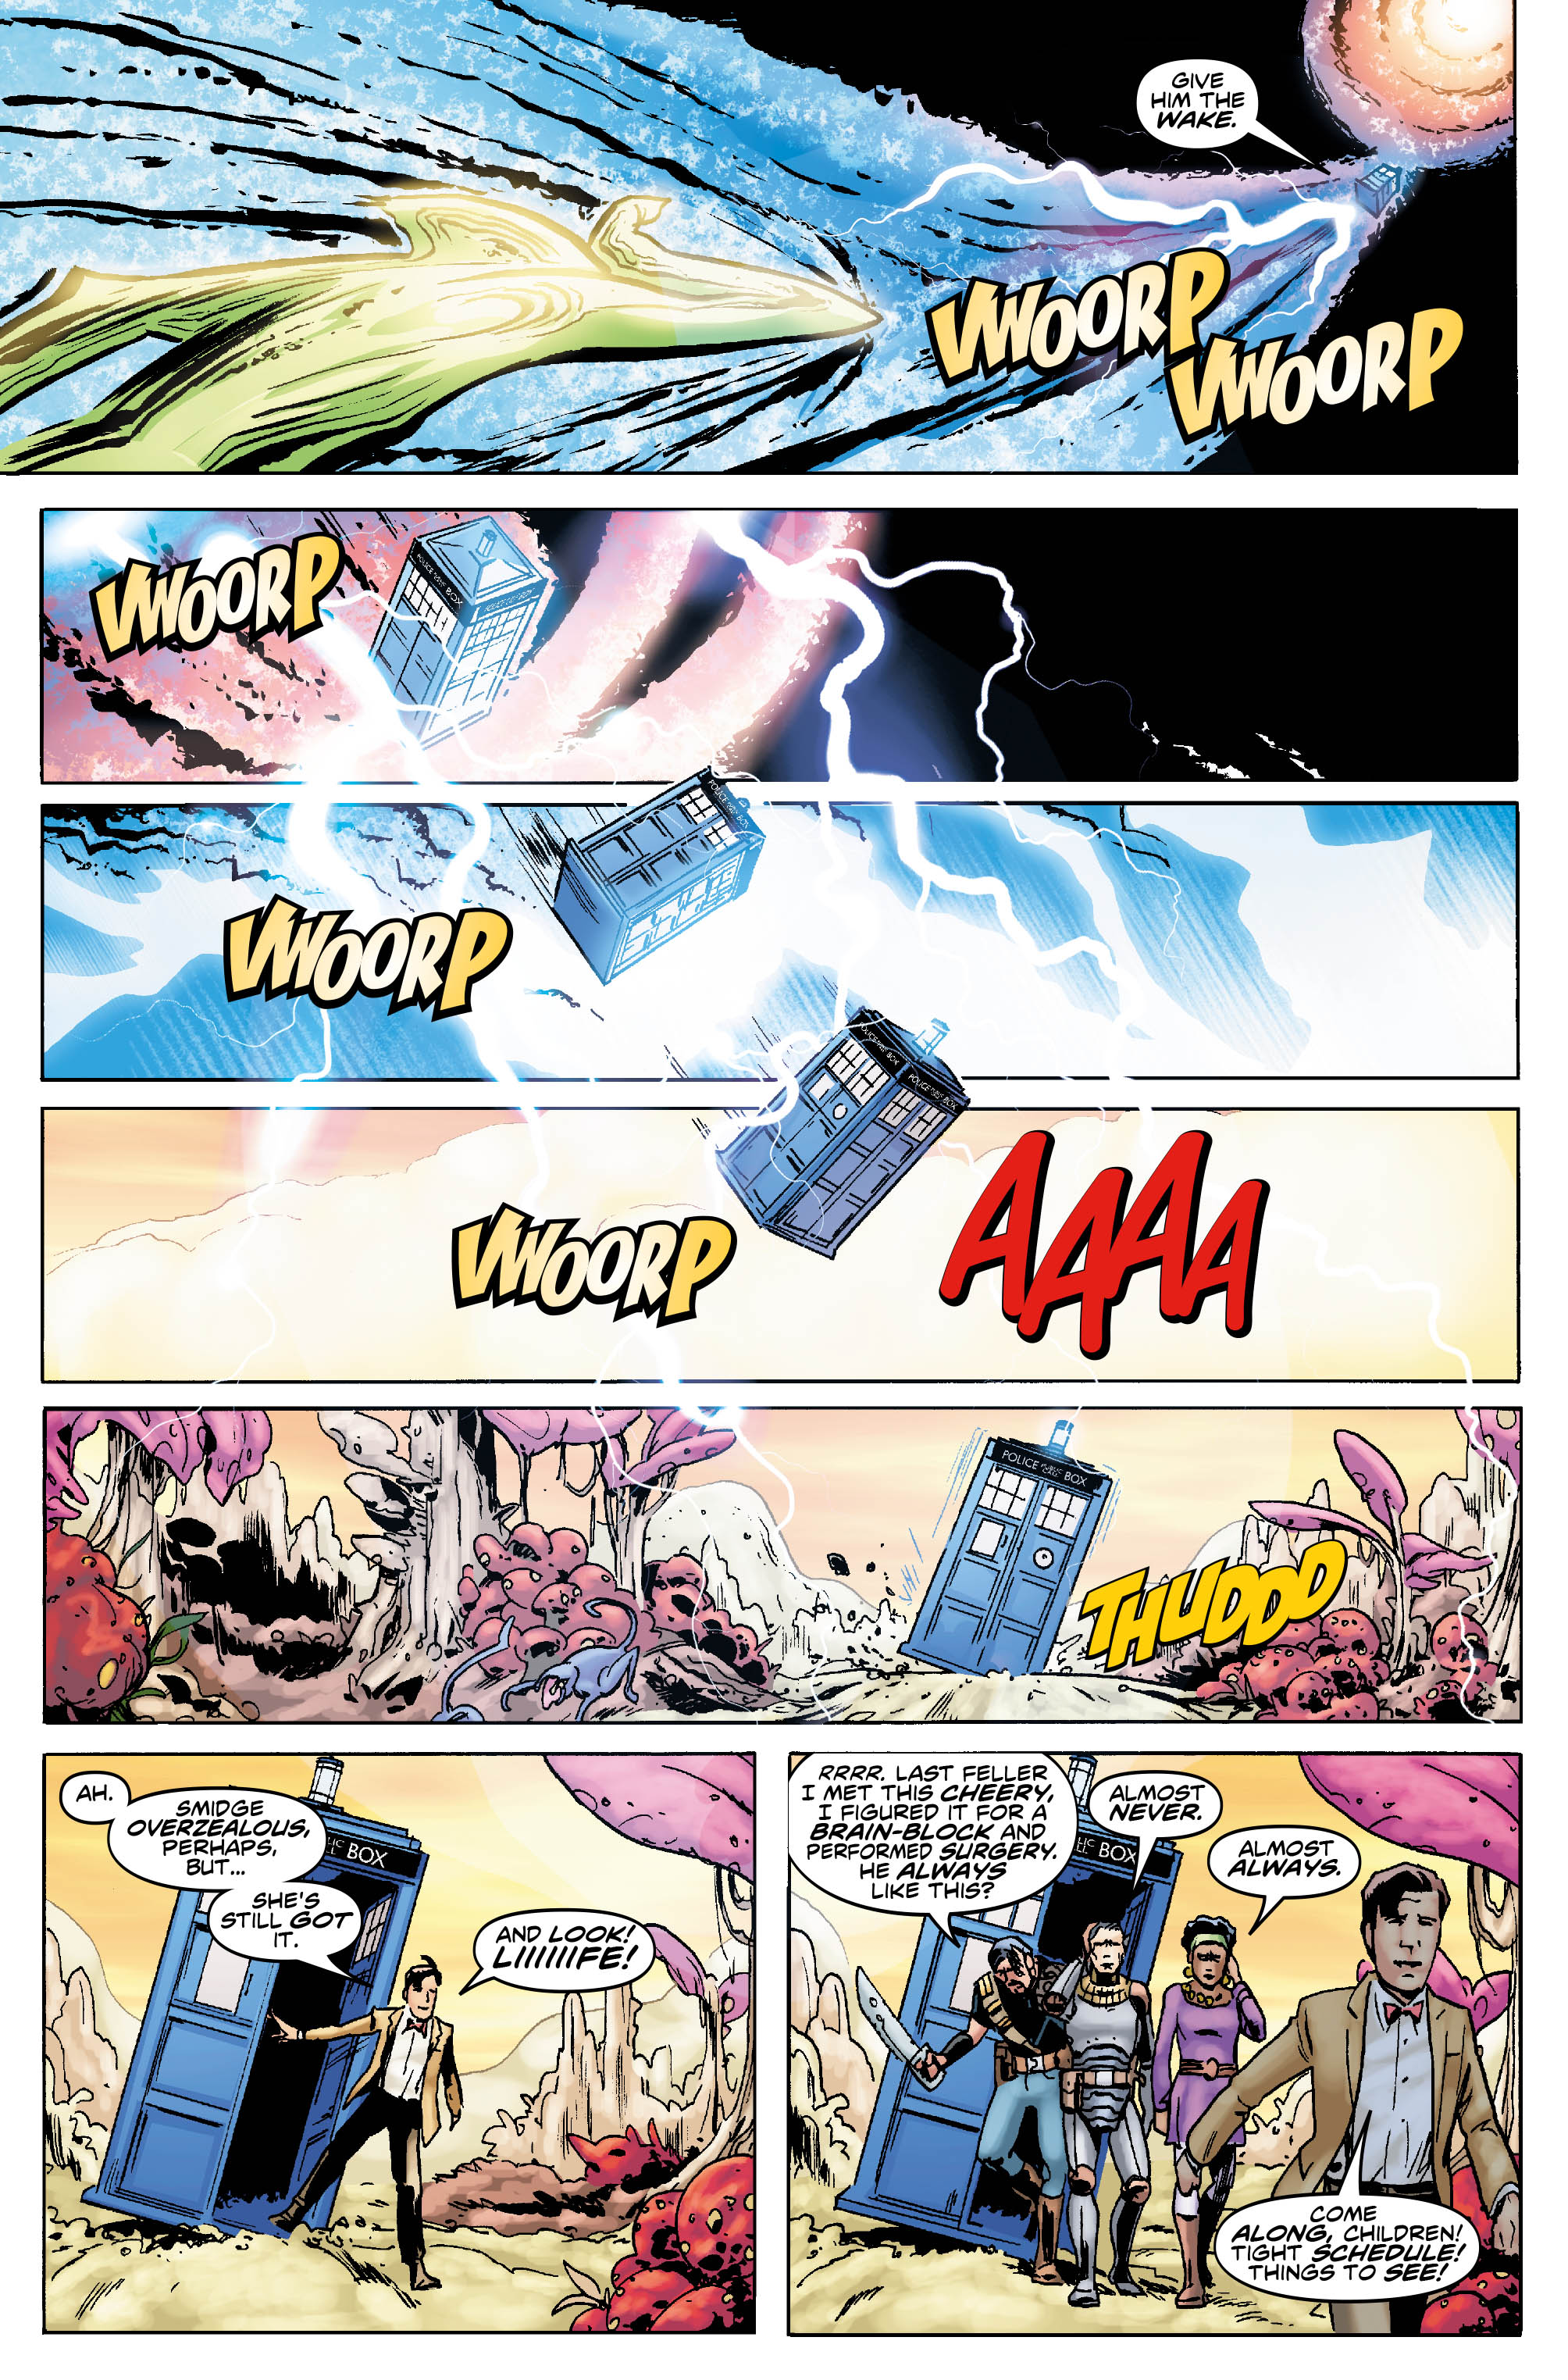 Doctor Who: The Eleventh Doctor #2.5 Preview Page